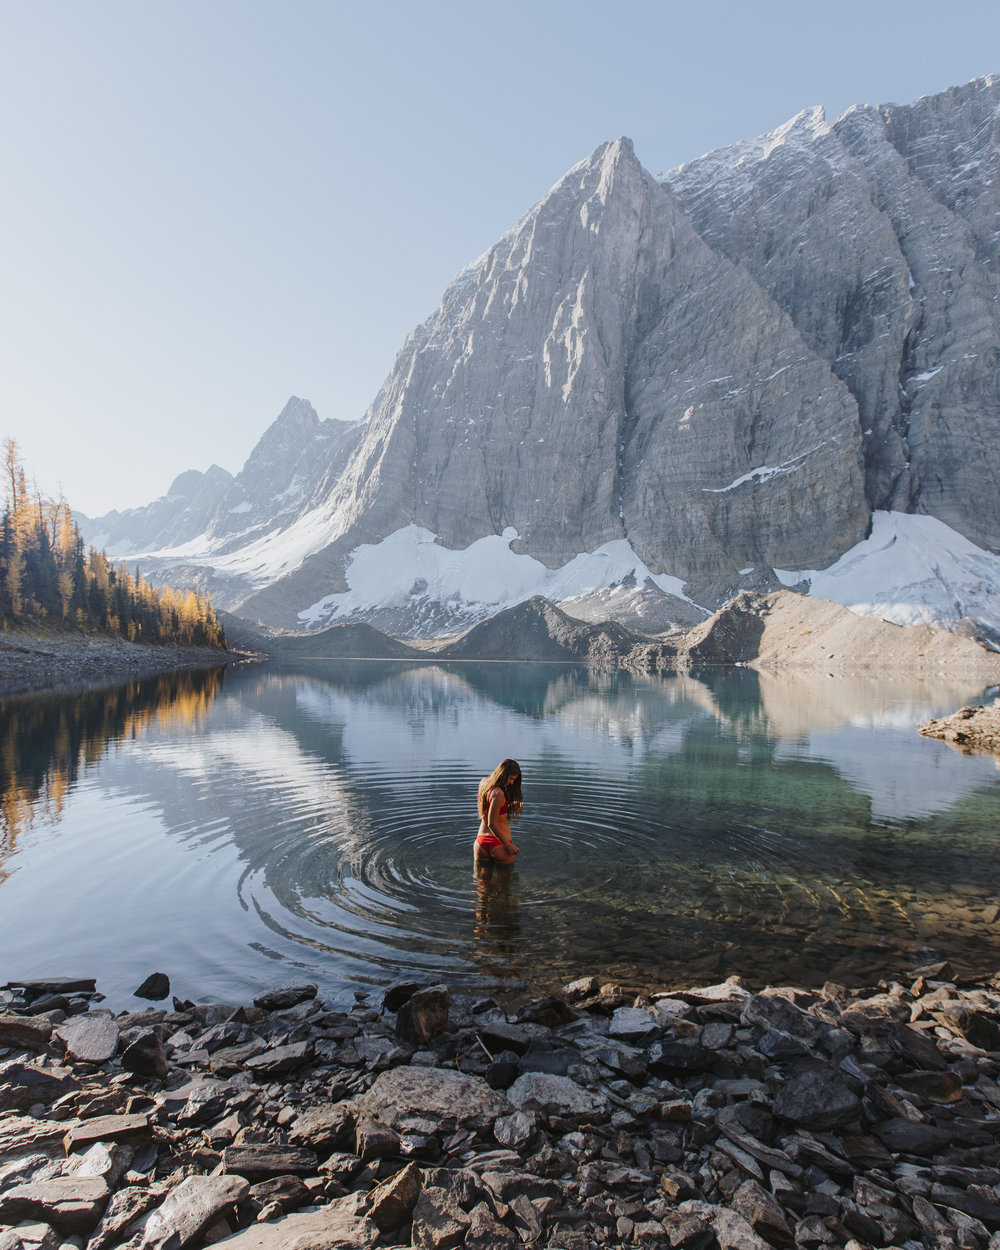 First light on the rockwall face and a morning swim in Floe Lake, photo / Bruin Alexander